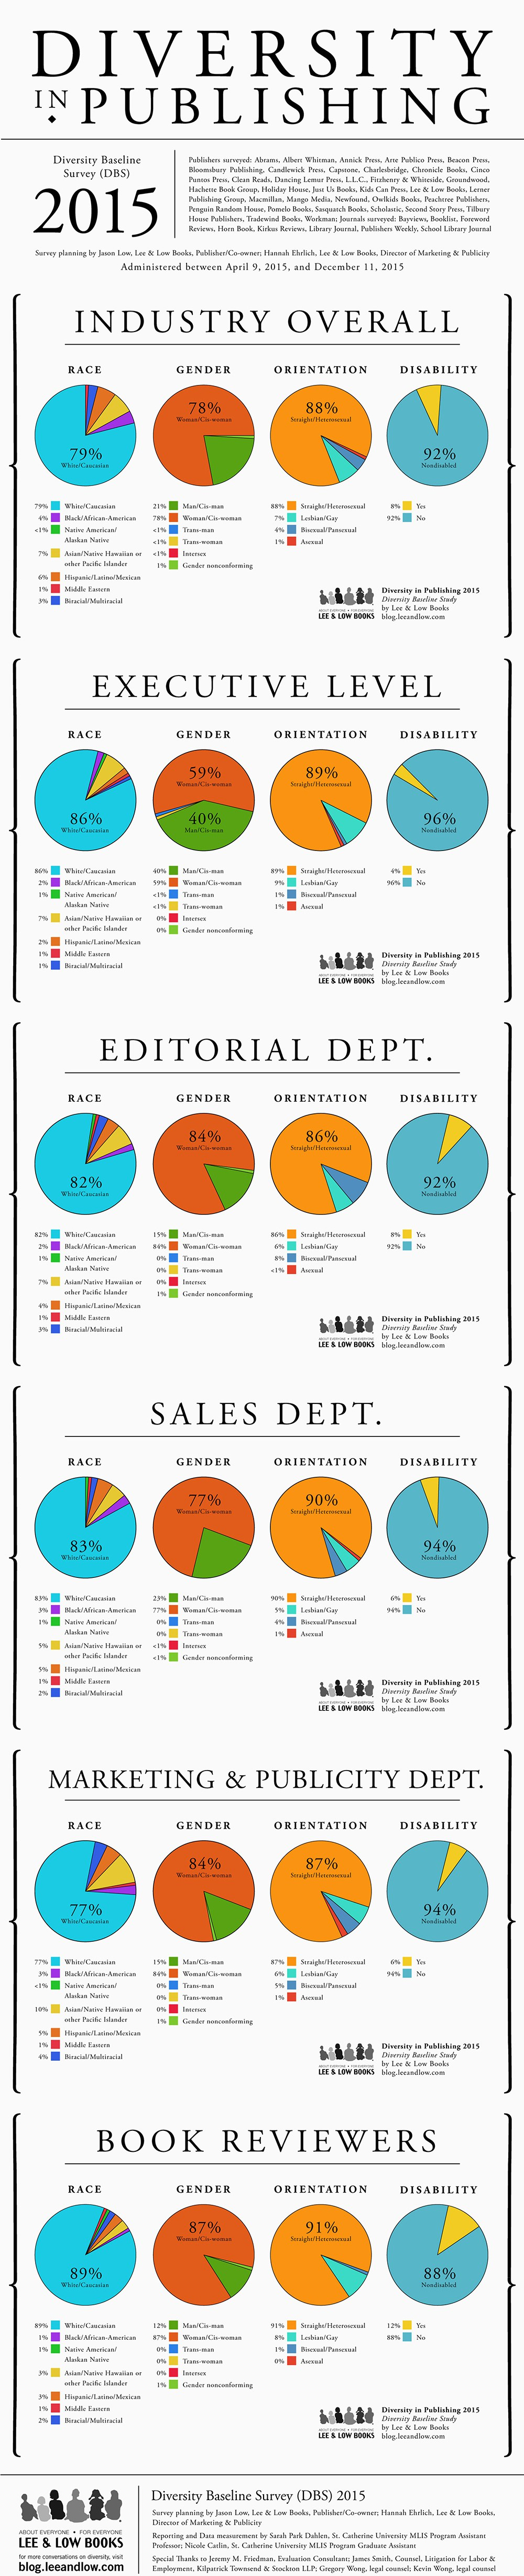 Diversity in Publishing 2015 E